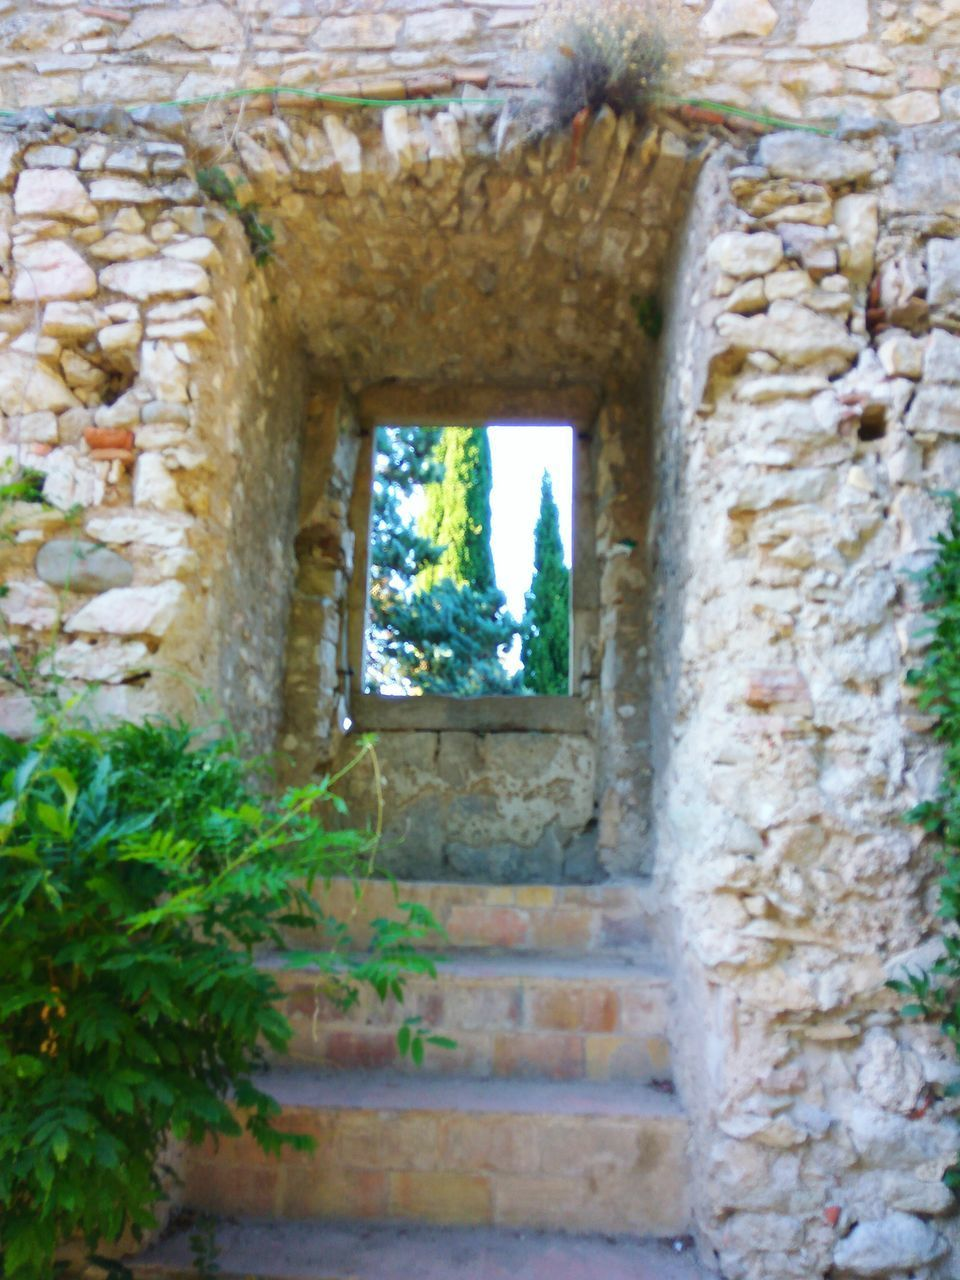 architecture, built structure, history, window, day, plant, no people, building exterior, tree, nature, outdoors, close-up